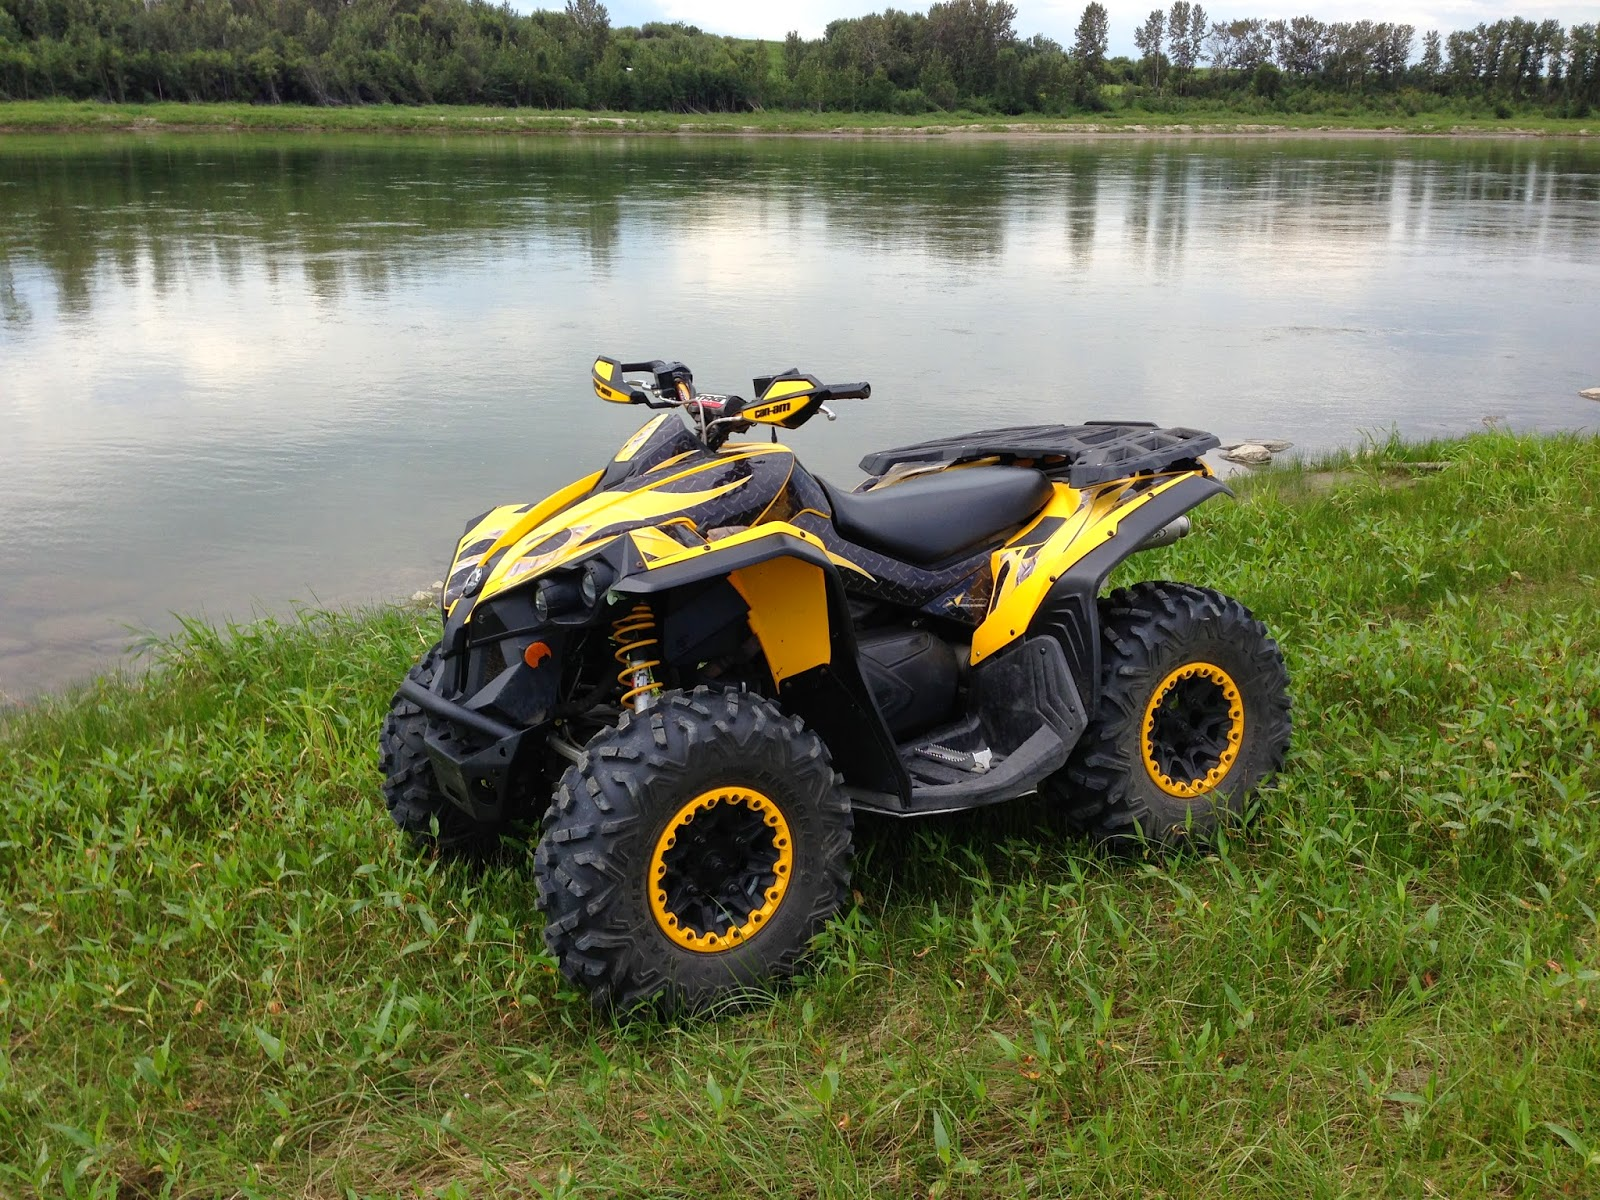 sask trail riders atv review can am renegade 800. Black Bedroom Furniture Sets. Home Design Ideas